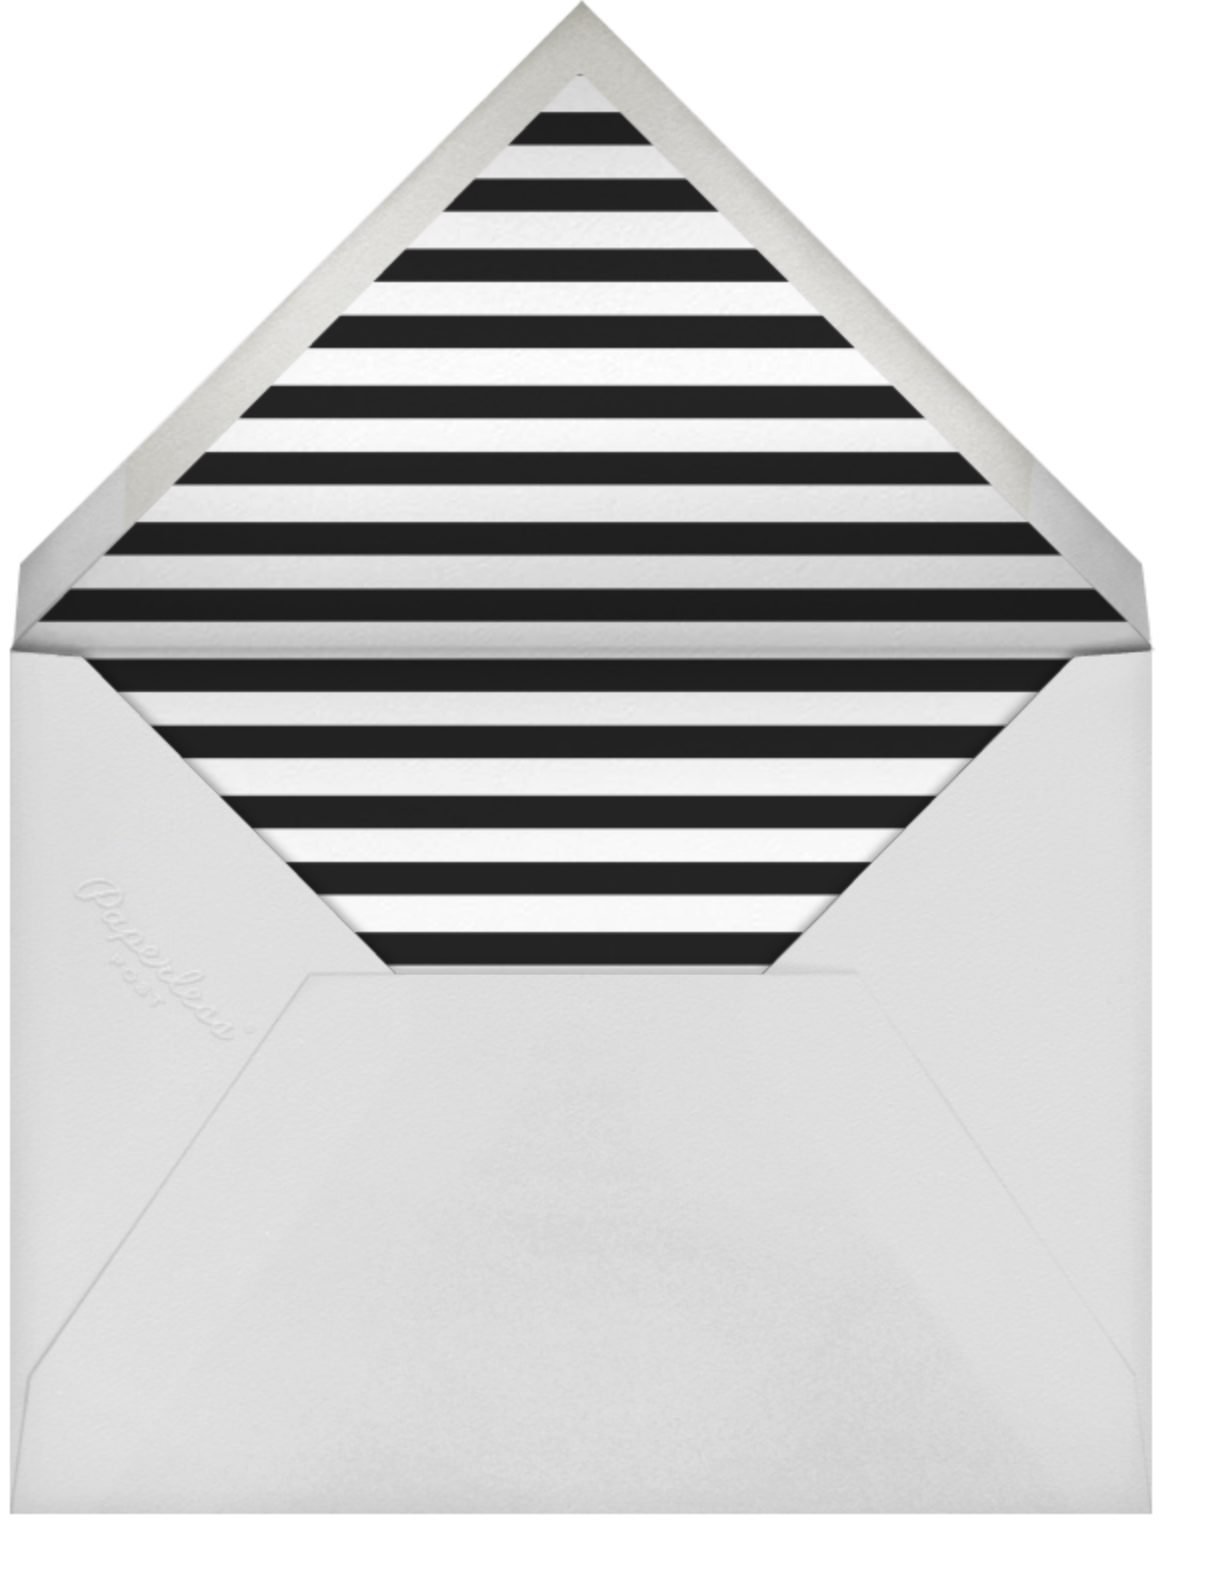 Pop Fizz Clink (Square) - Black/Silver - kate spade new york - Adult birthday - envelope back